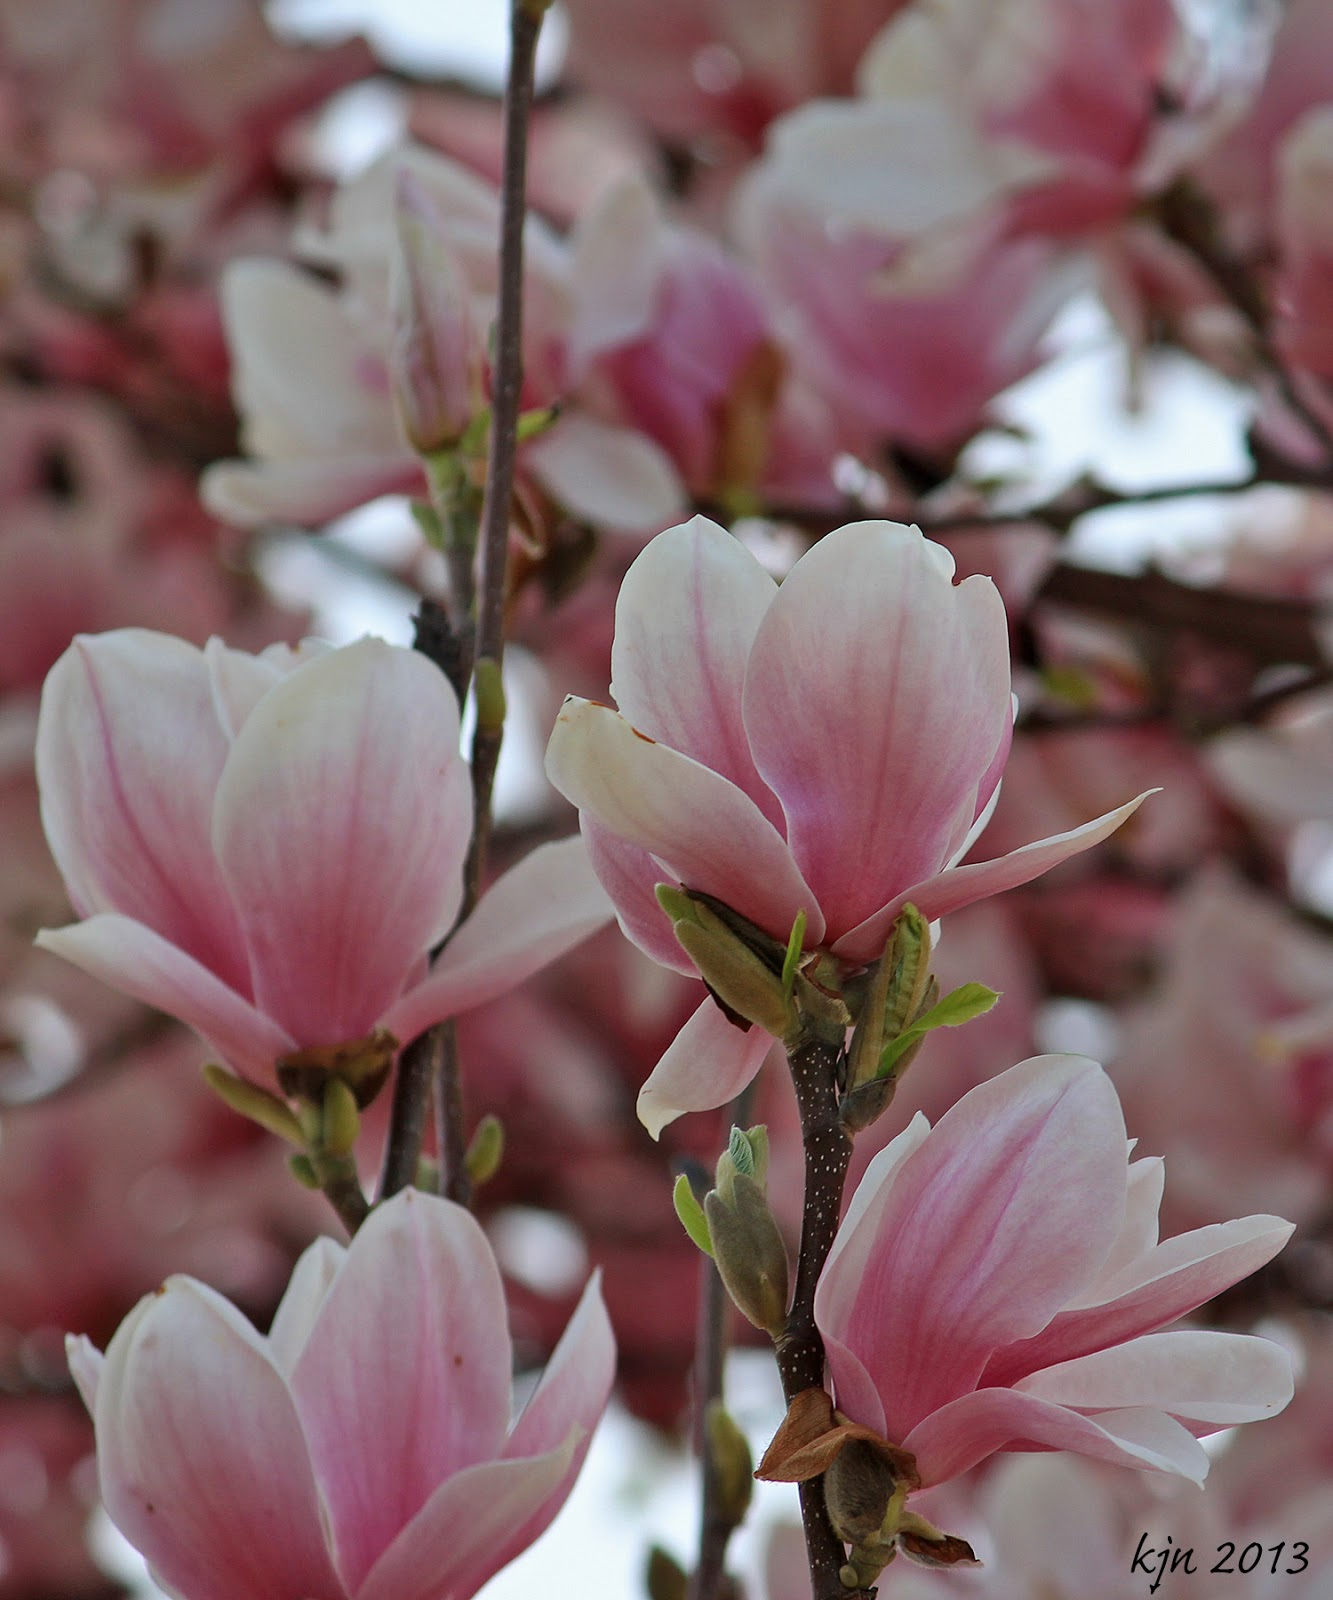 The Outskirts of Suburbia: Sweet Magnolia Blossoms